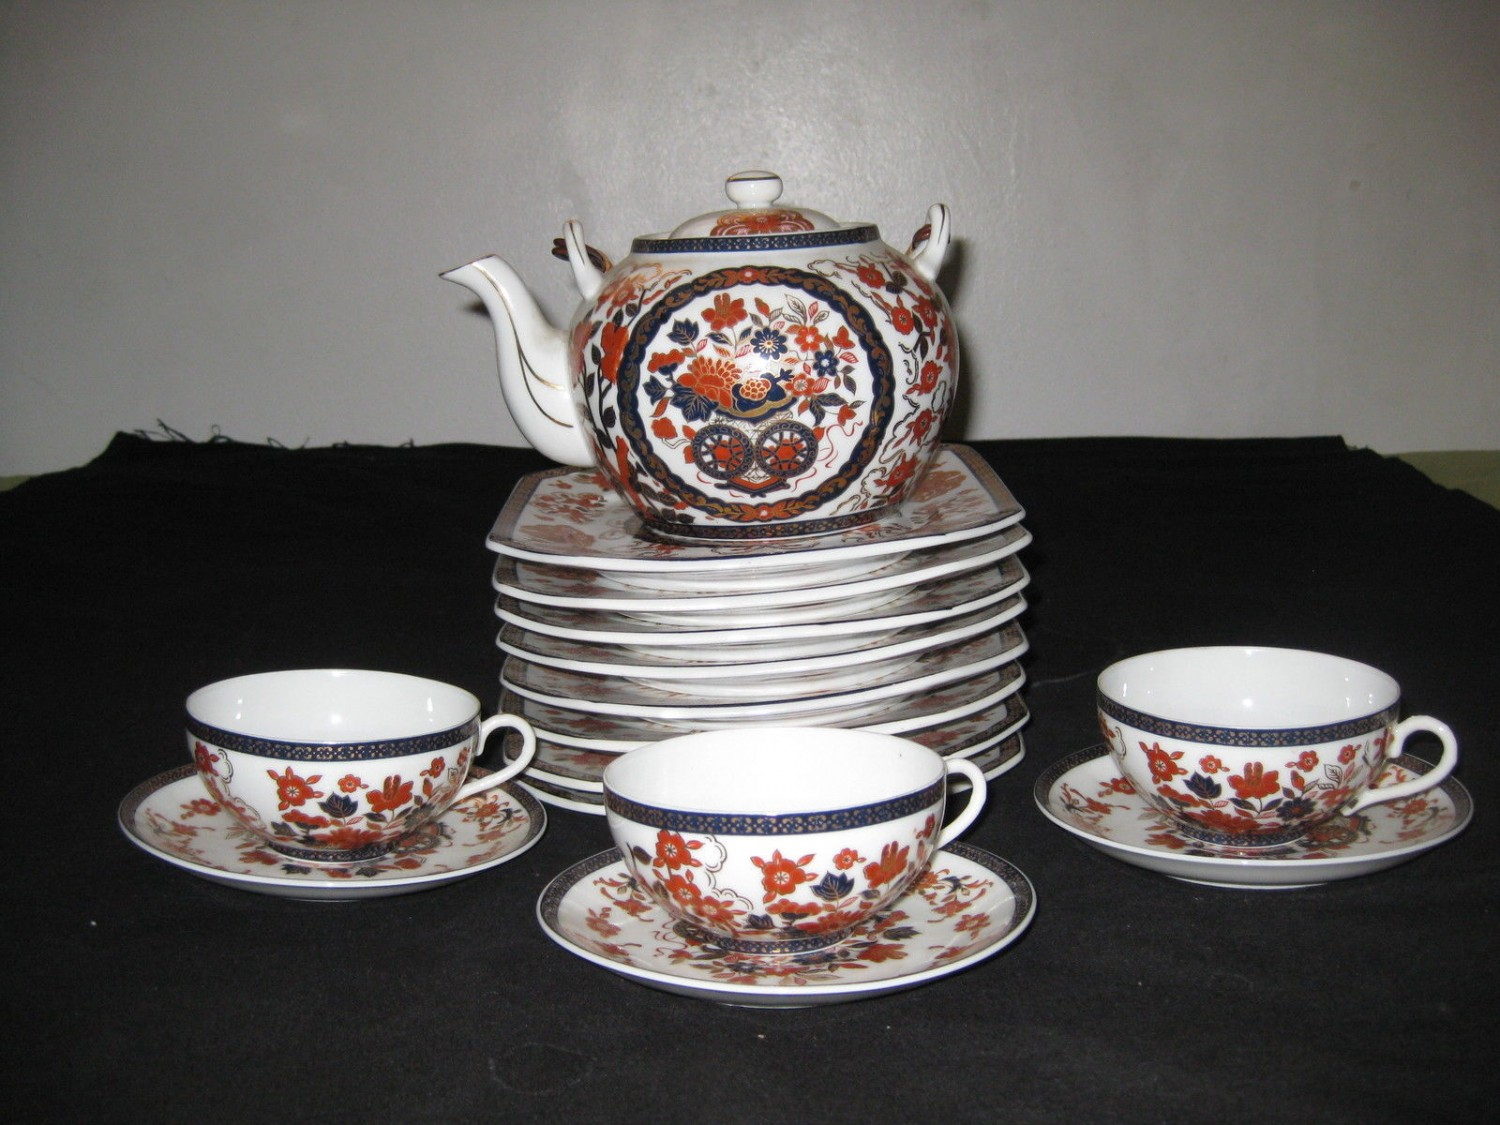 ANTIQUE RARE TRIPLE B JAPANESE PORCELAIN TEA POT AND PLATE SET.